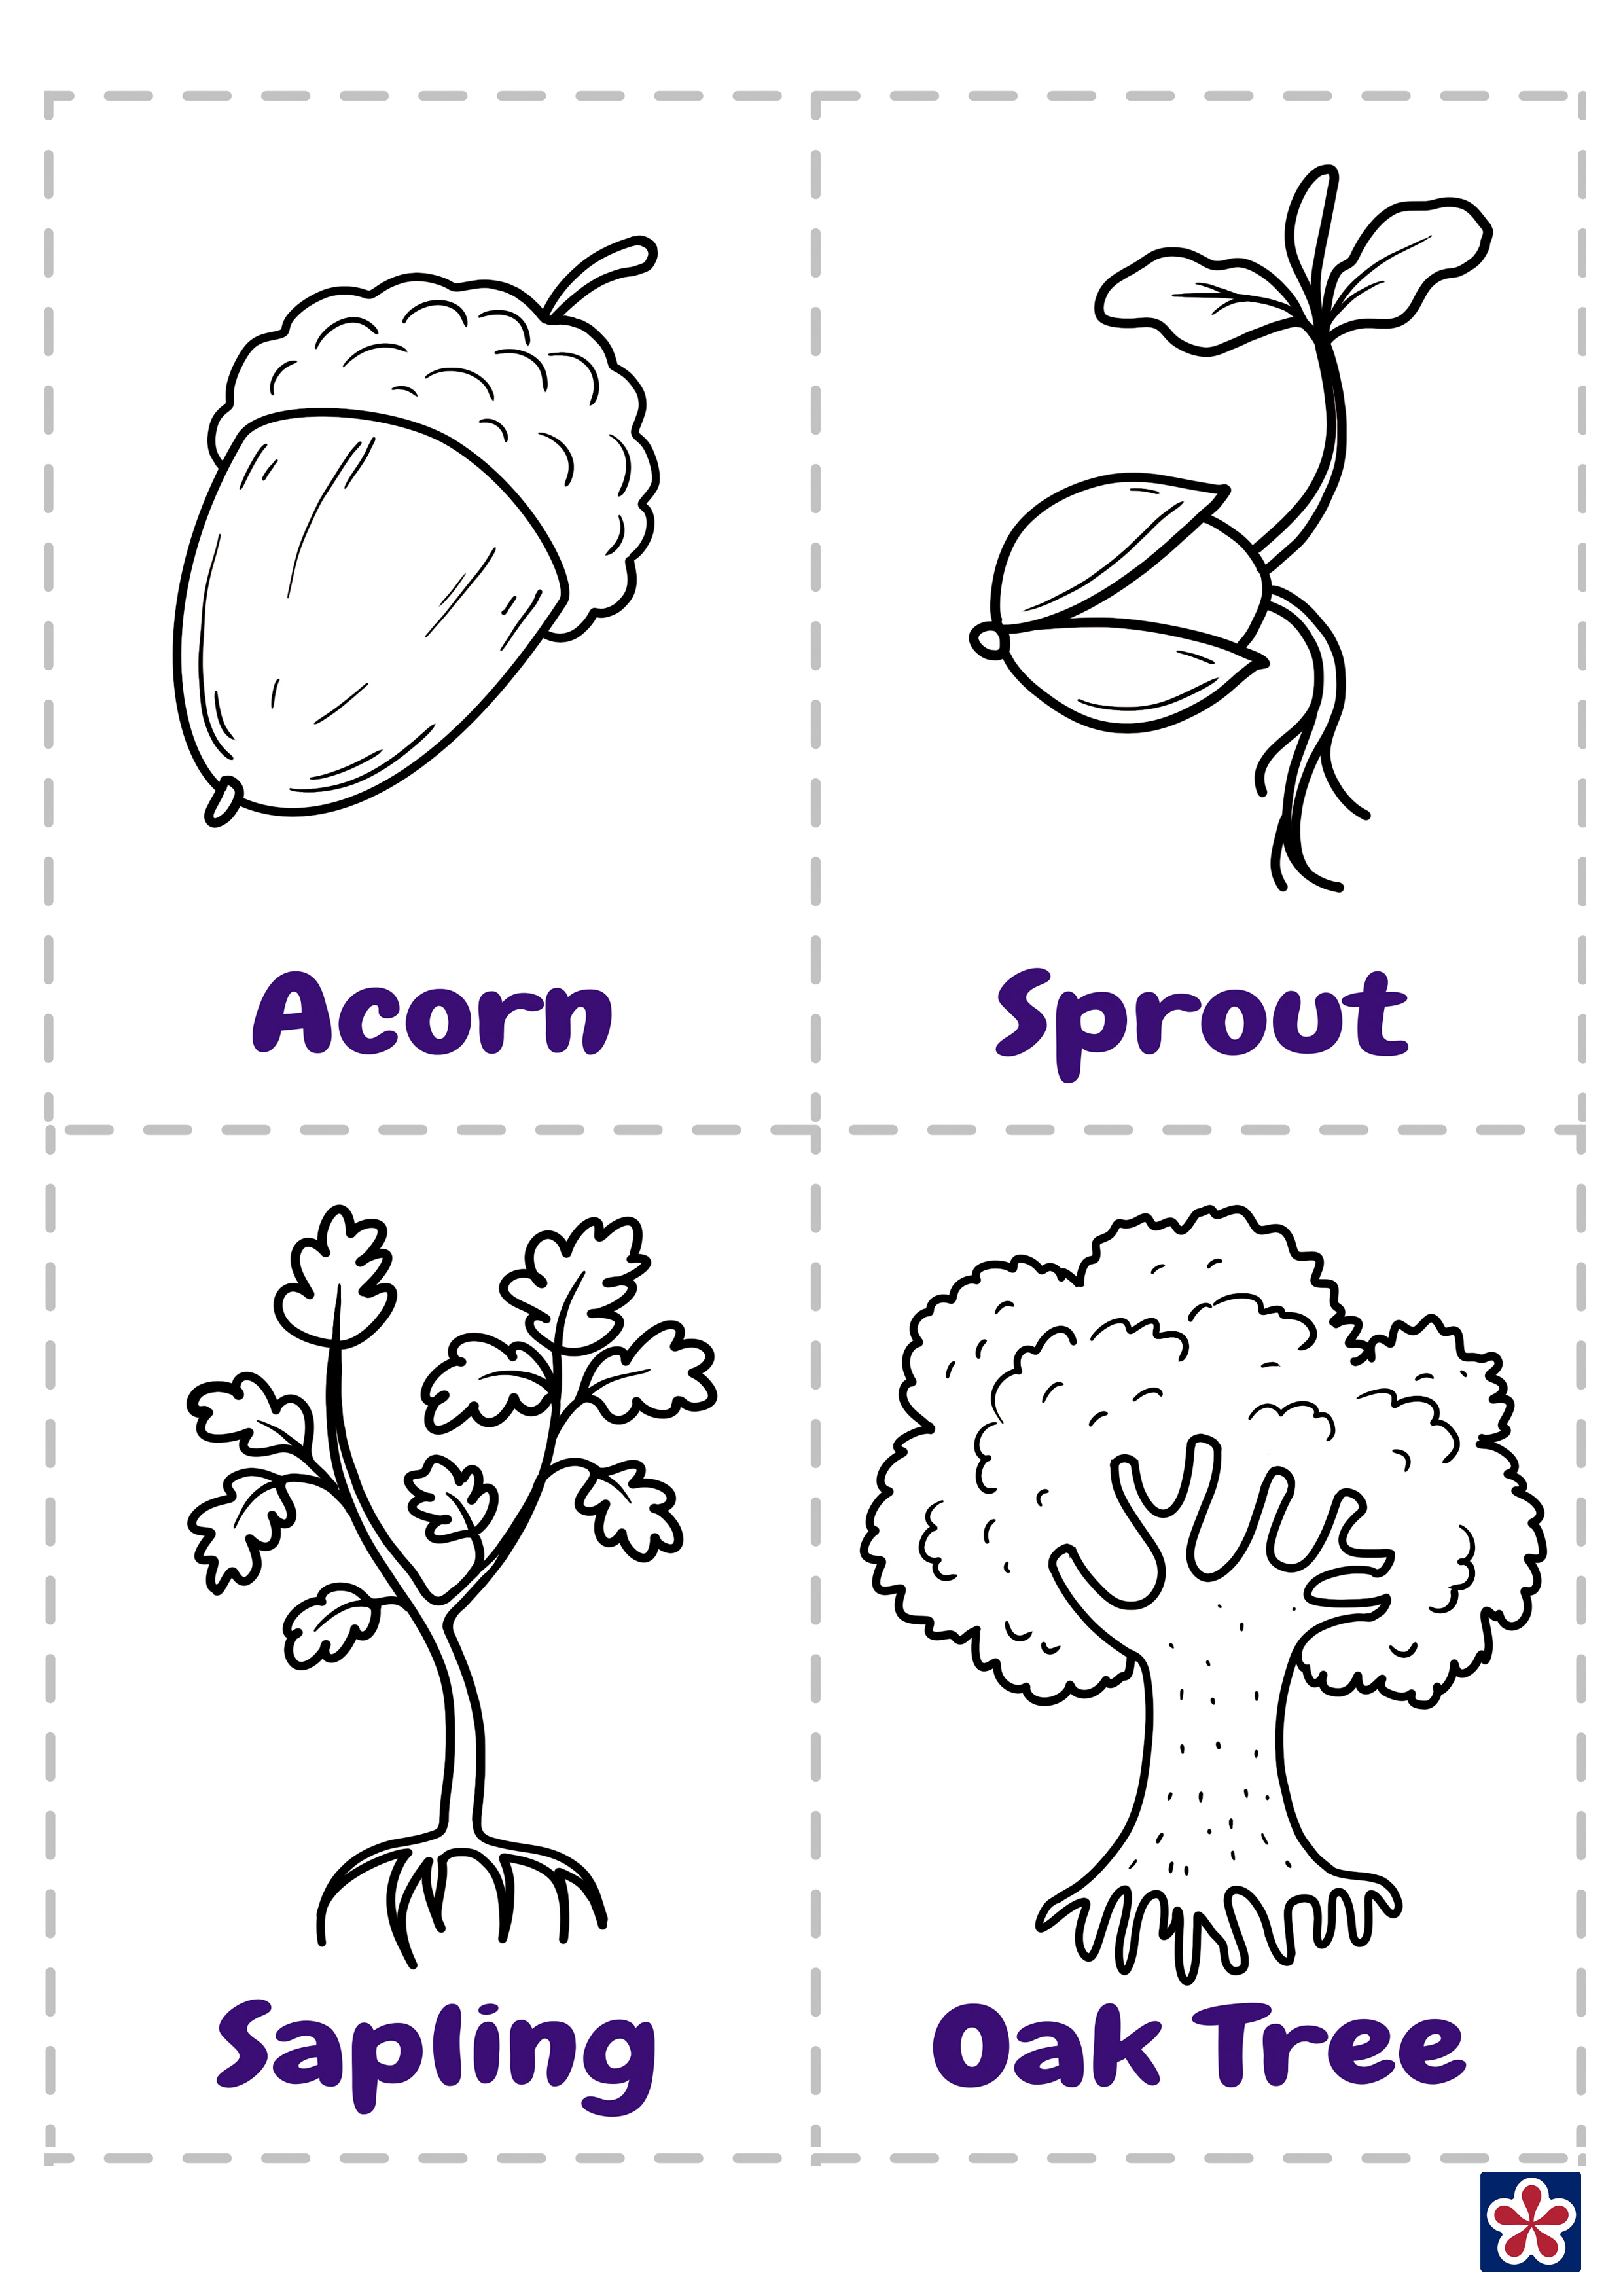 From Acorn To Oak Tree Free Printables Teachersmag